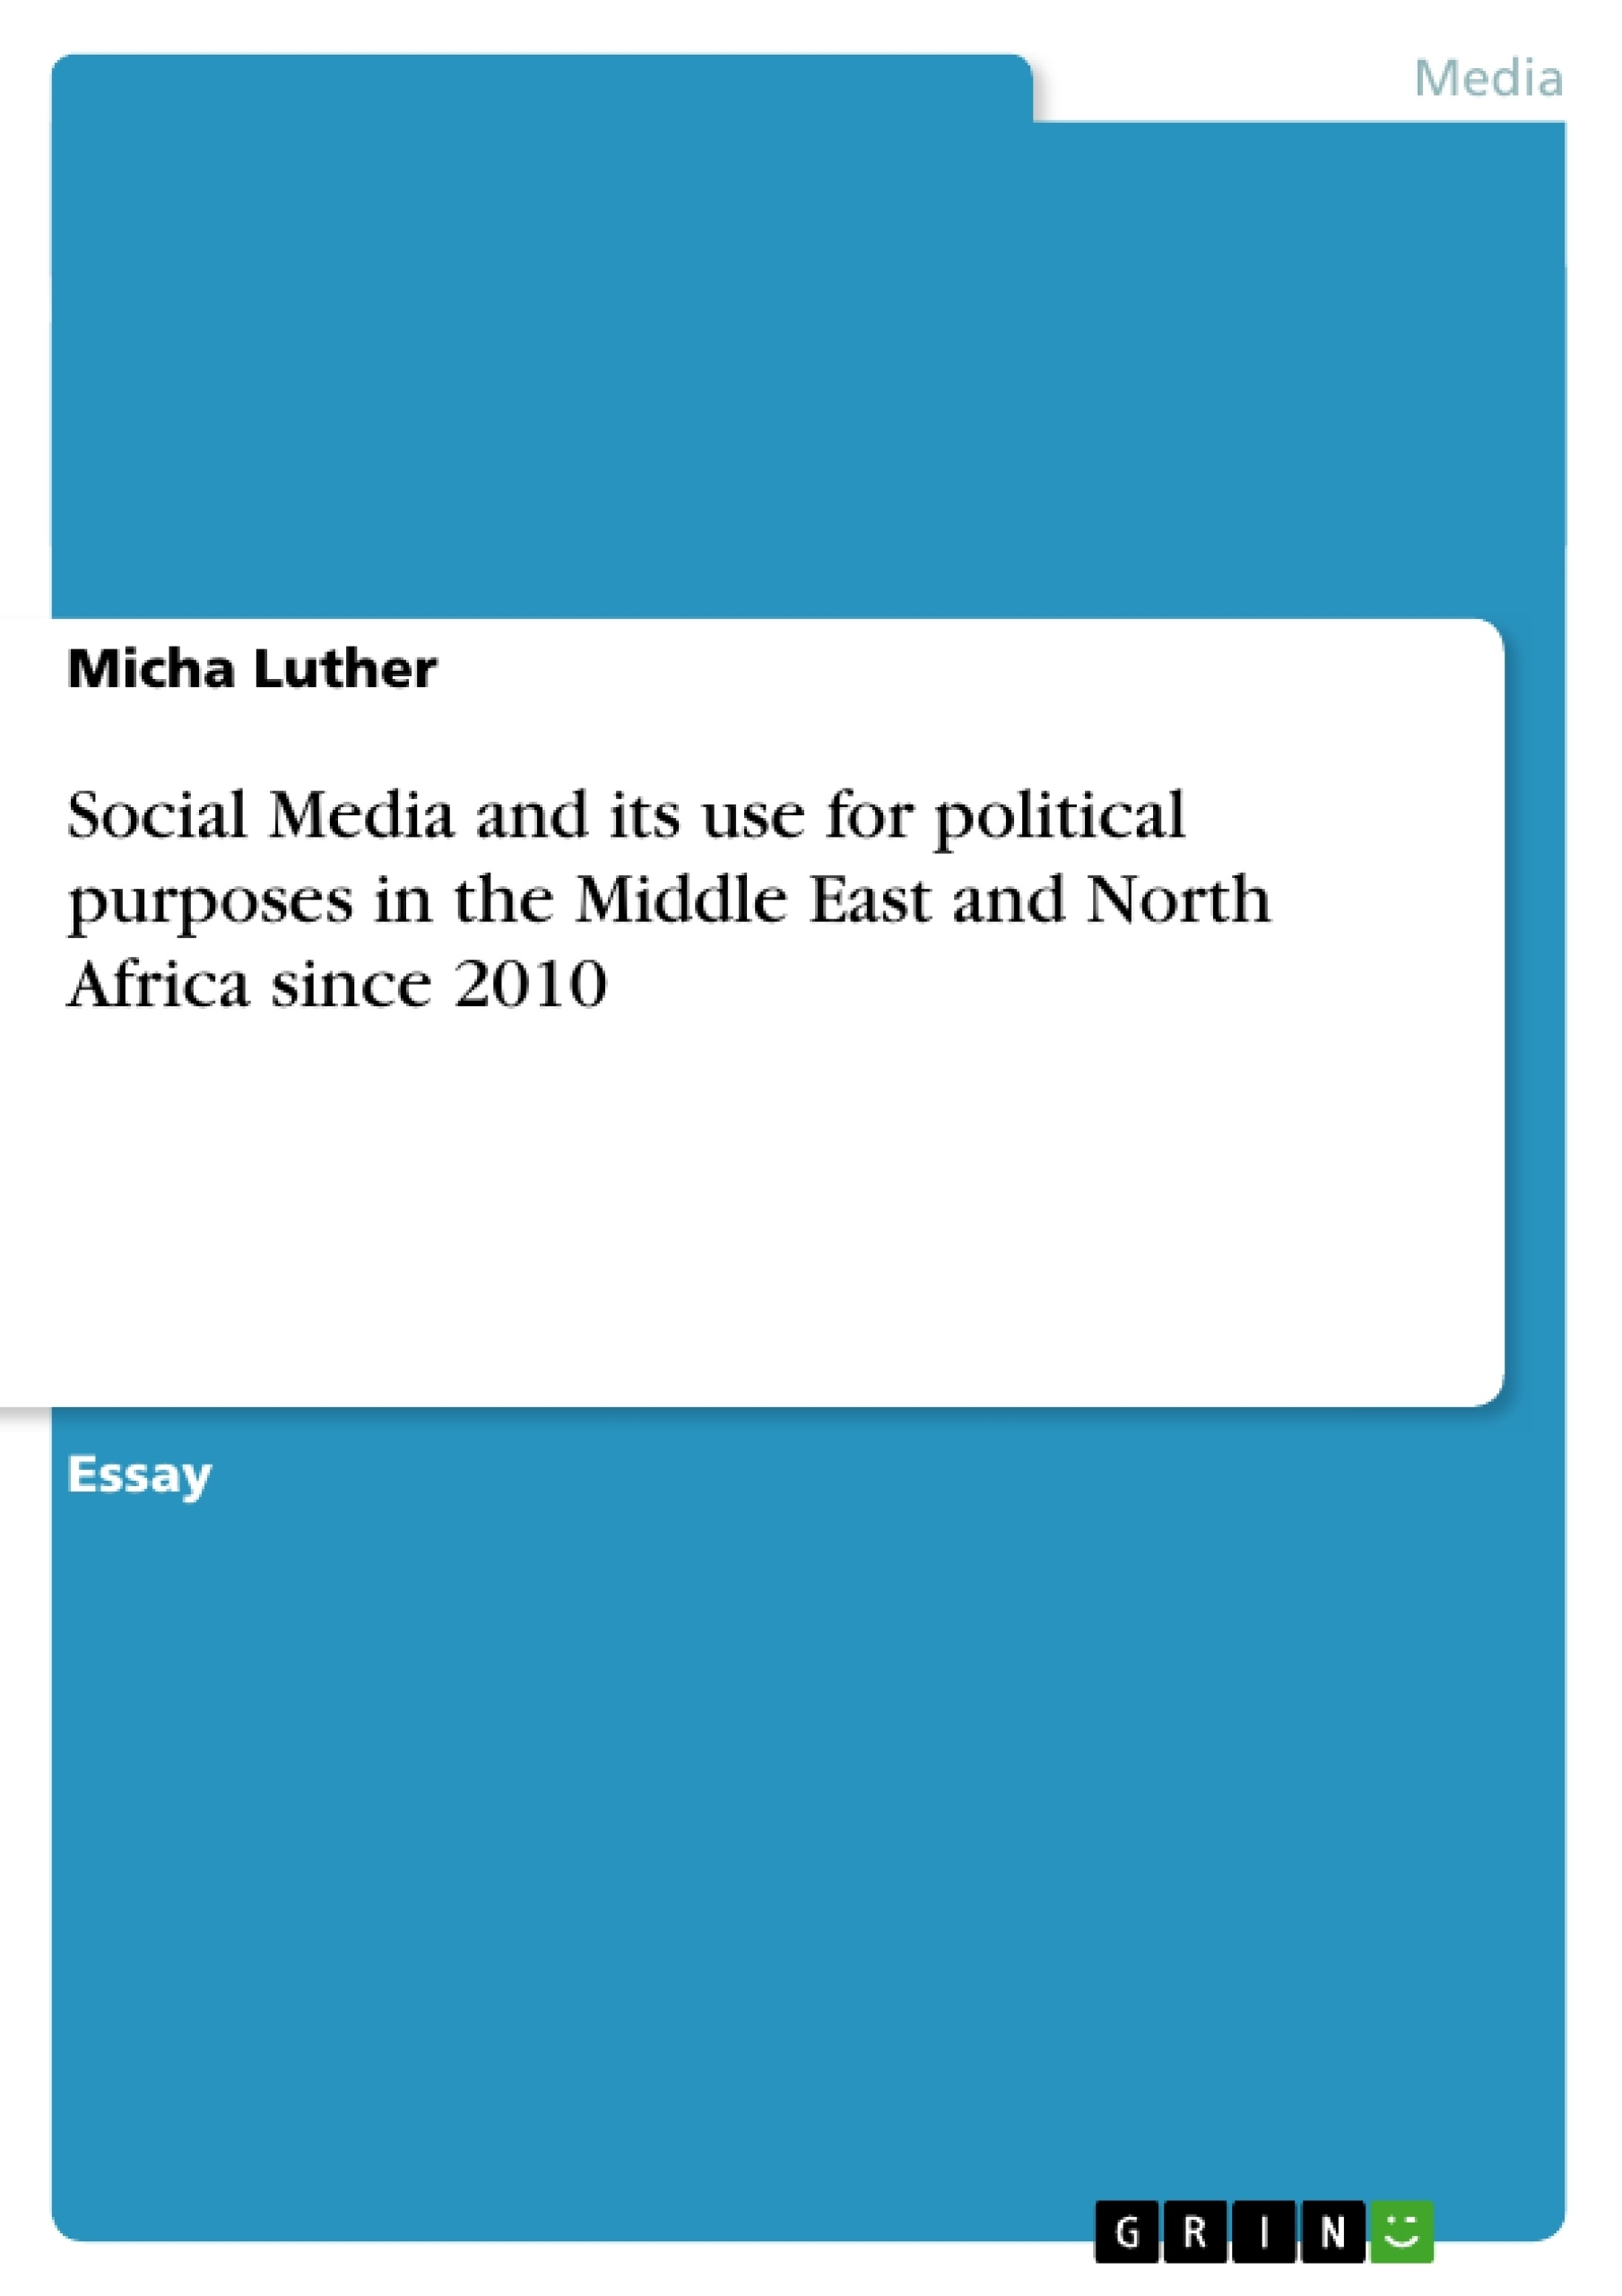 middle east term papers